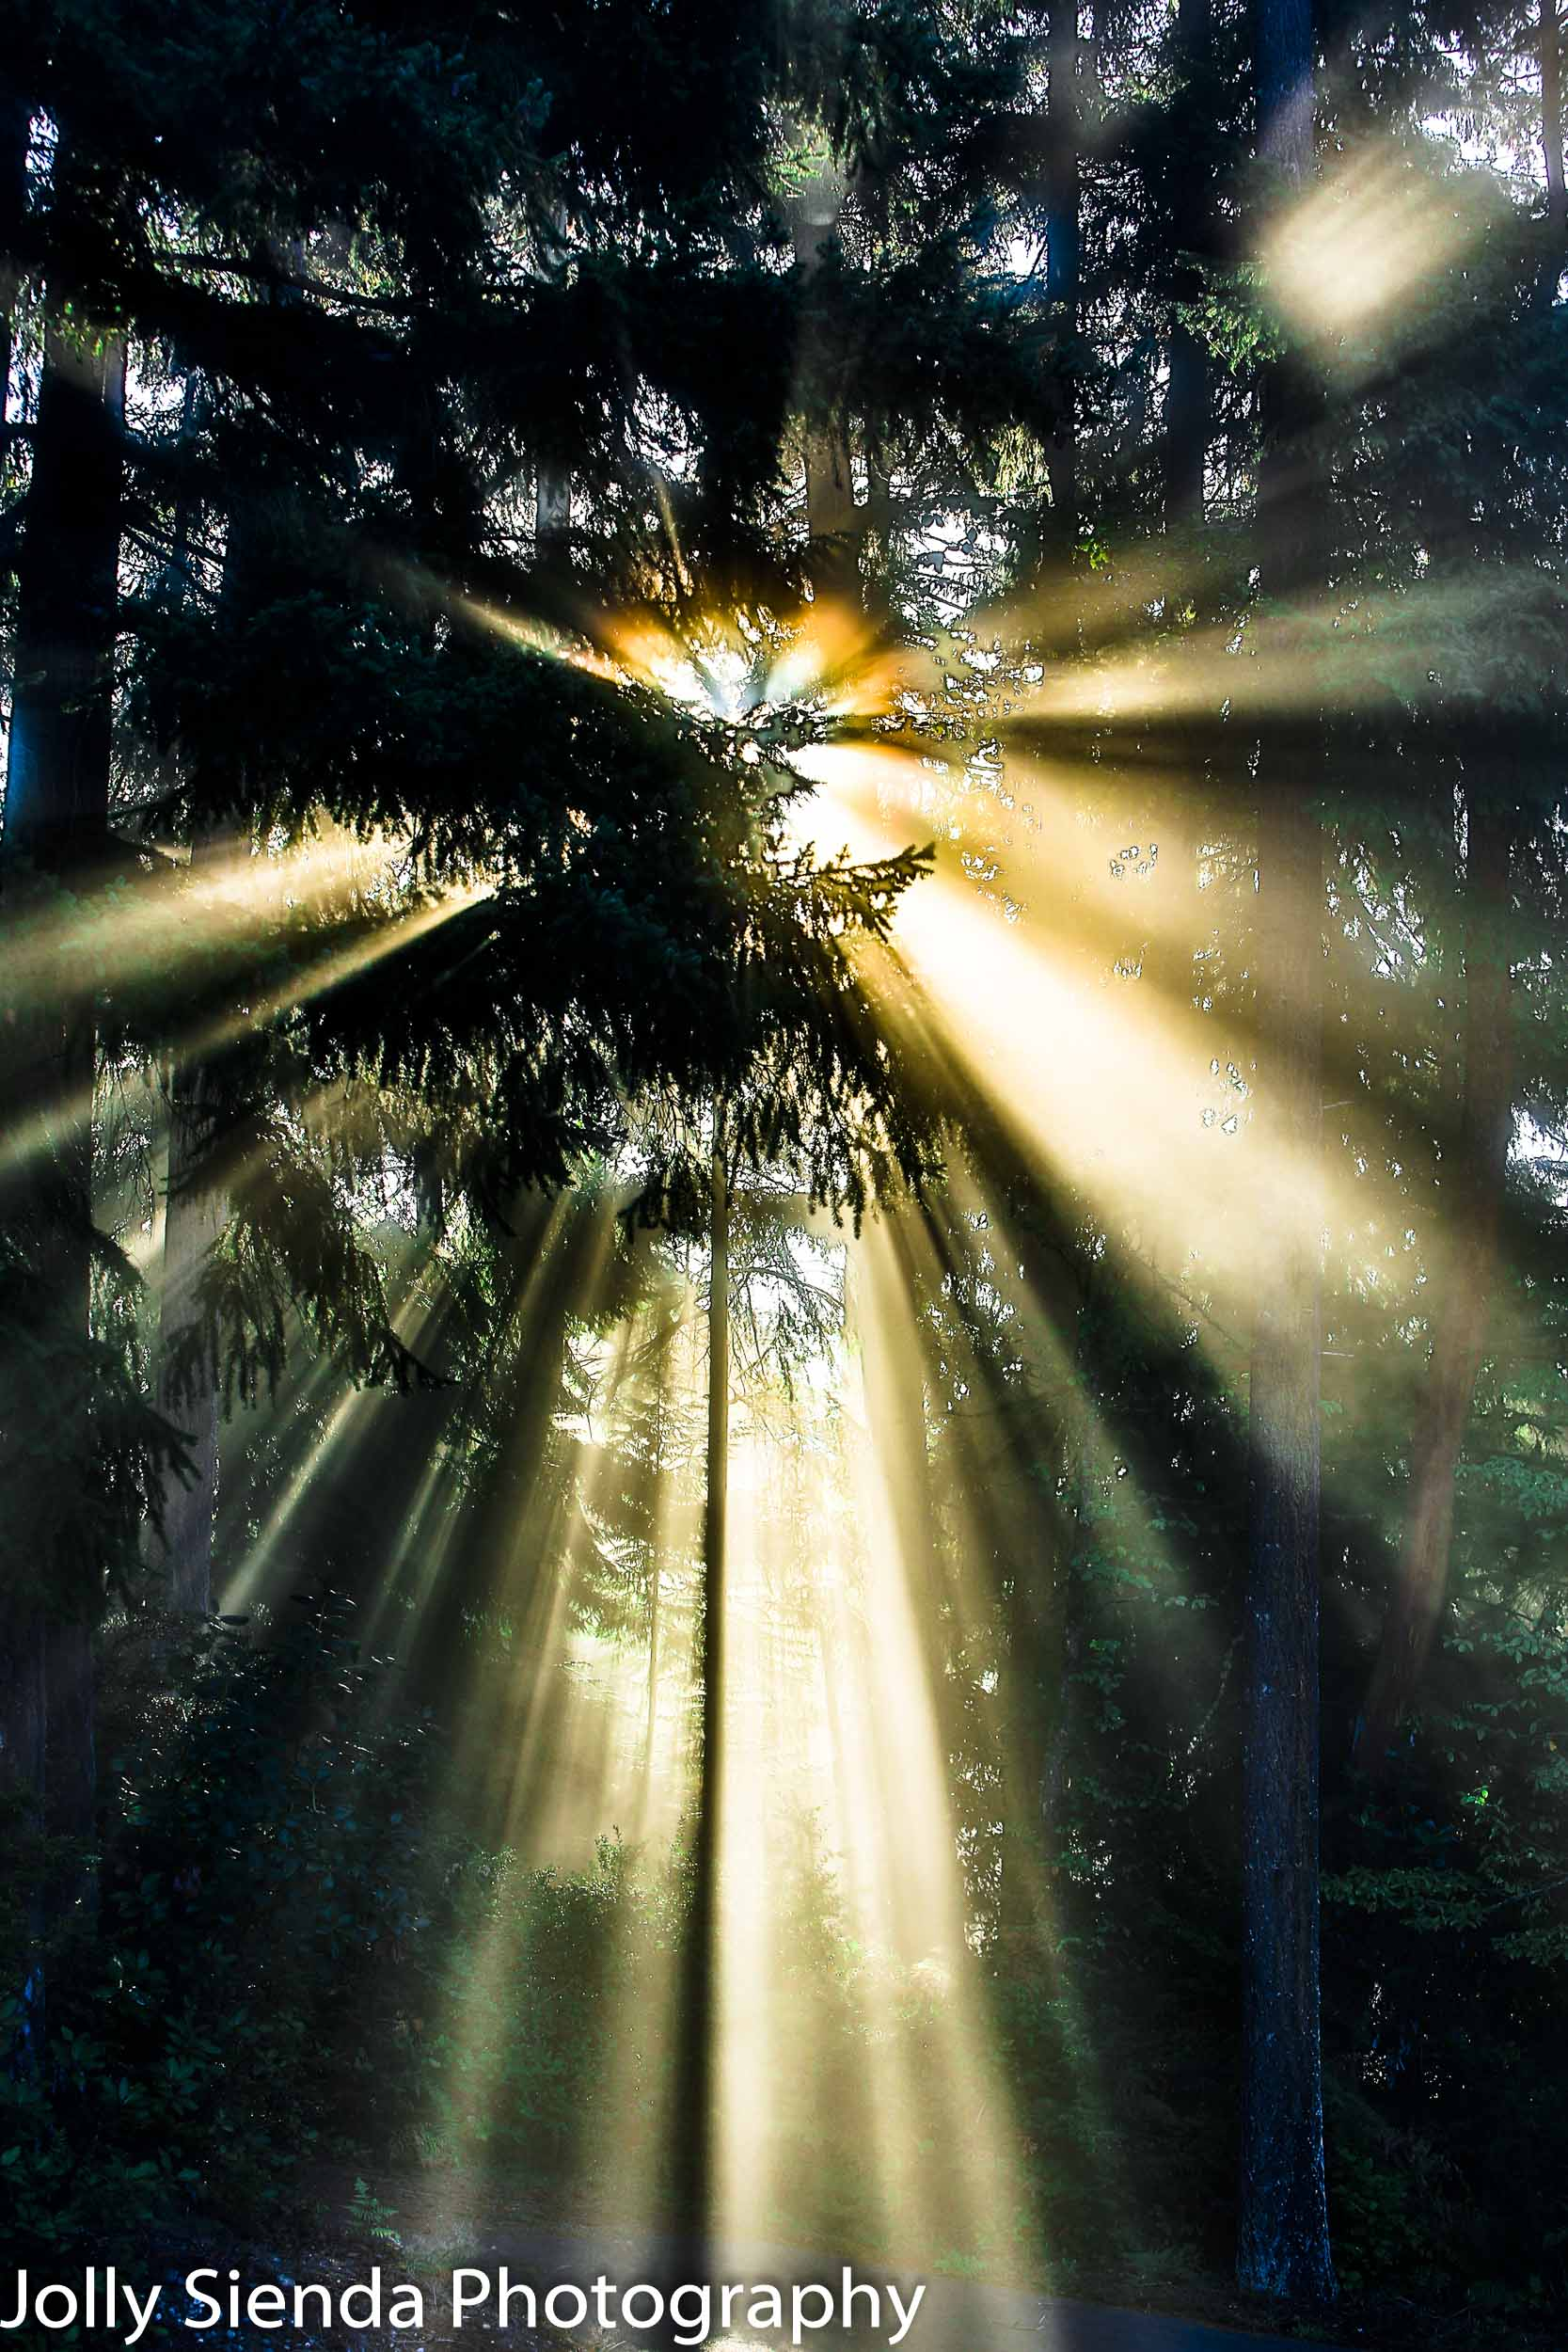 Heavinly sunlight streams through the towering Evergreen Trees